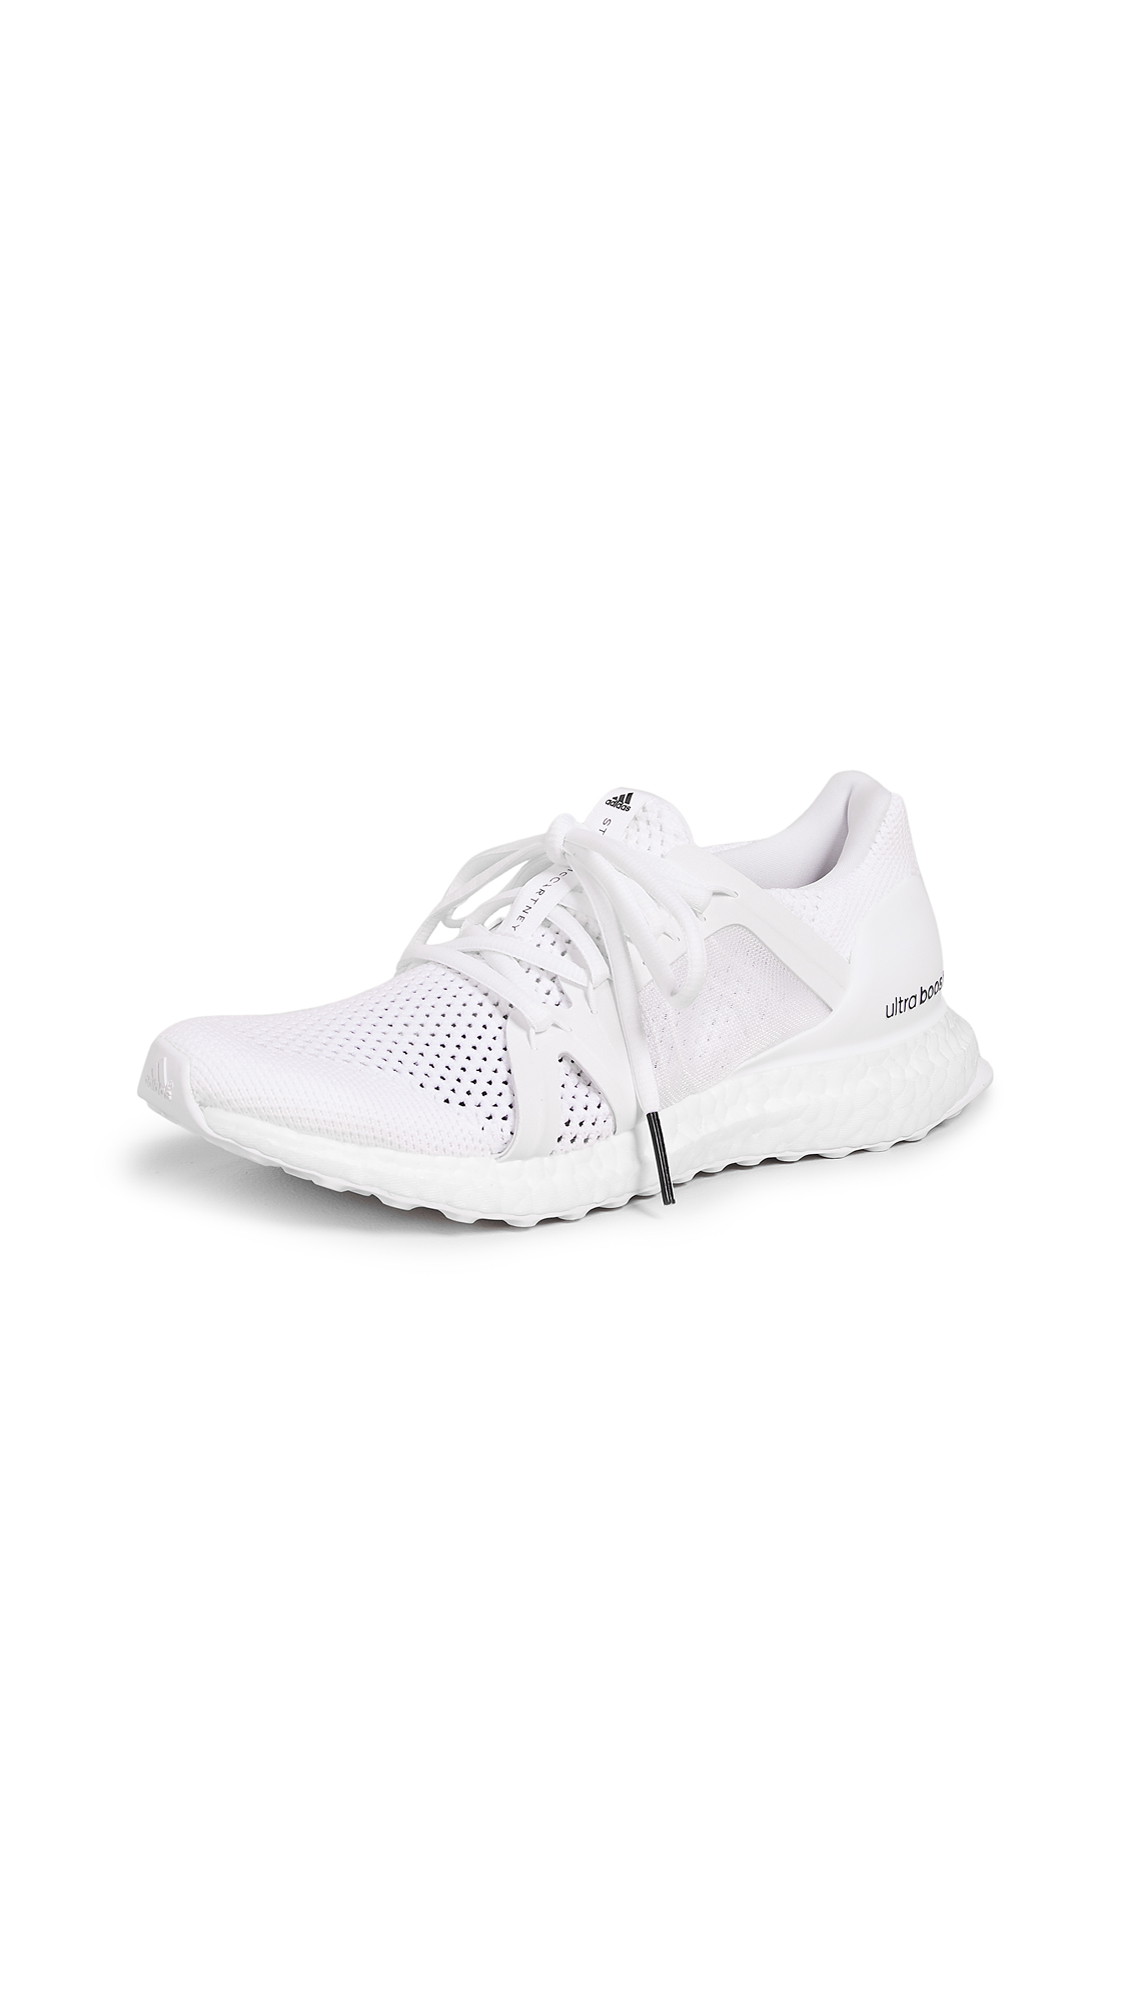 adidas by Stella McCartney UltraBOOST Sneakers - White/White/White